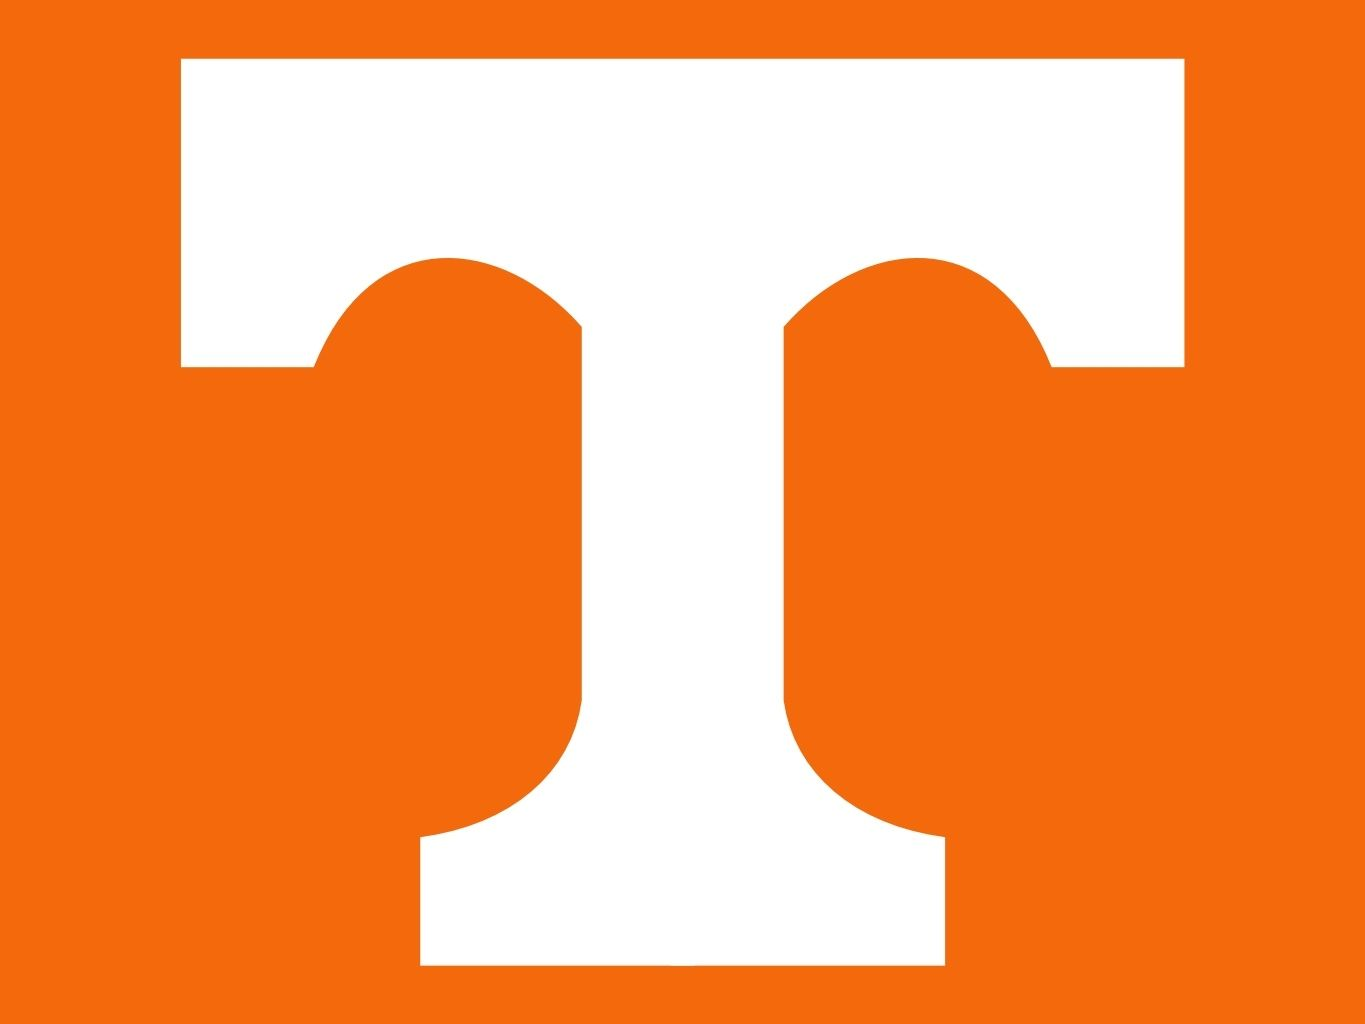 university of tennessee vols images cornhole boards pinterest rh pinterest com Nike Tennessee Vols Wallpaper Orange Nike Logo